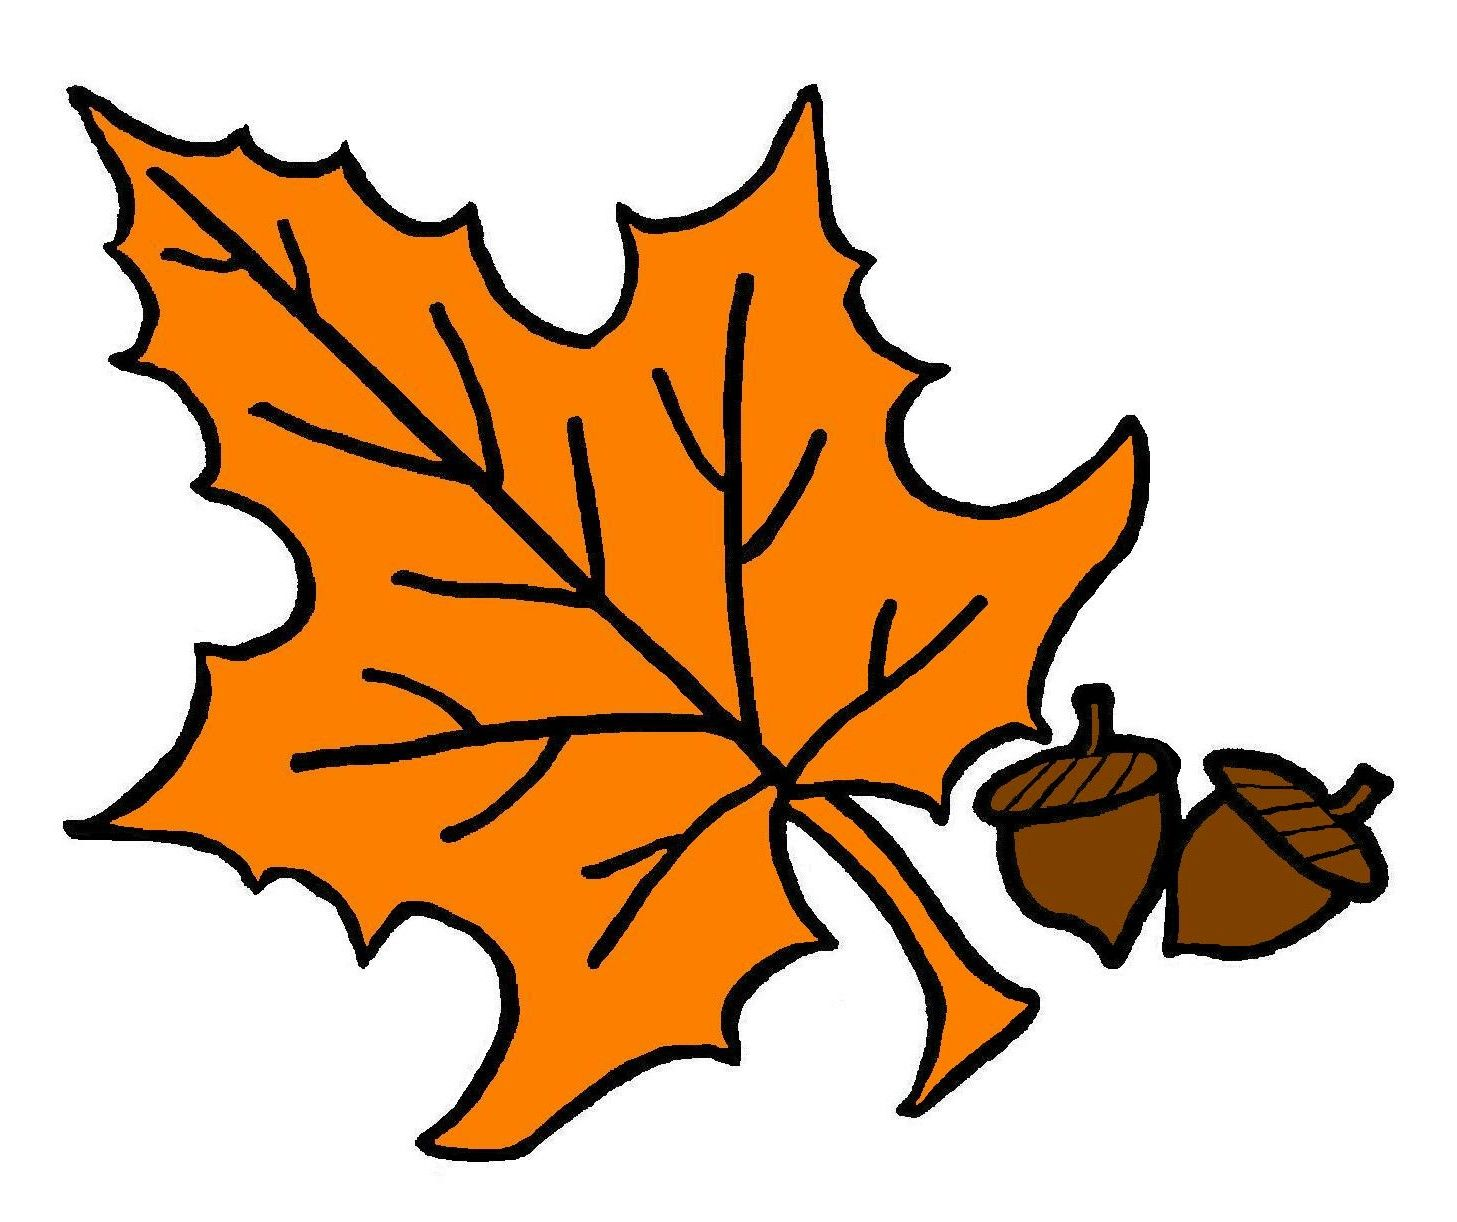 fall leaves tree with autumn leaves illustrationlor clip art 2 rh pinterest com oak leaf clipart oak leaf clip art free